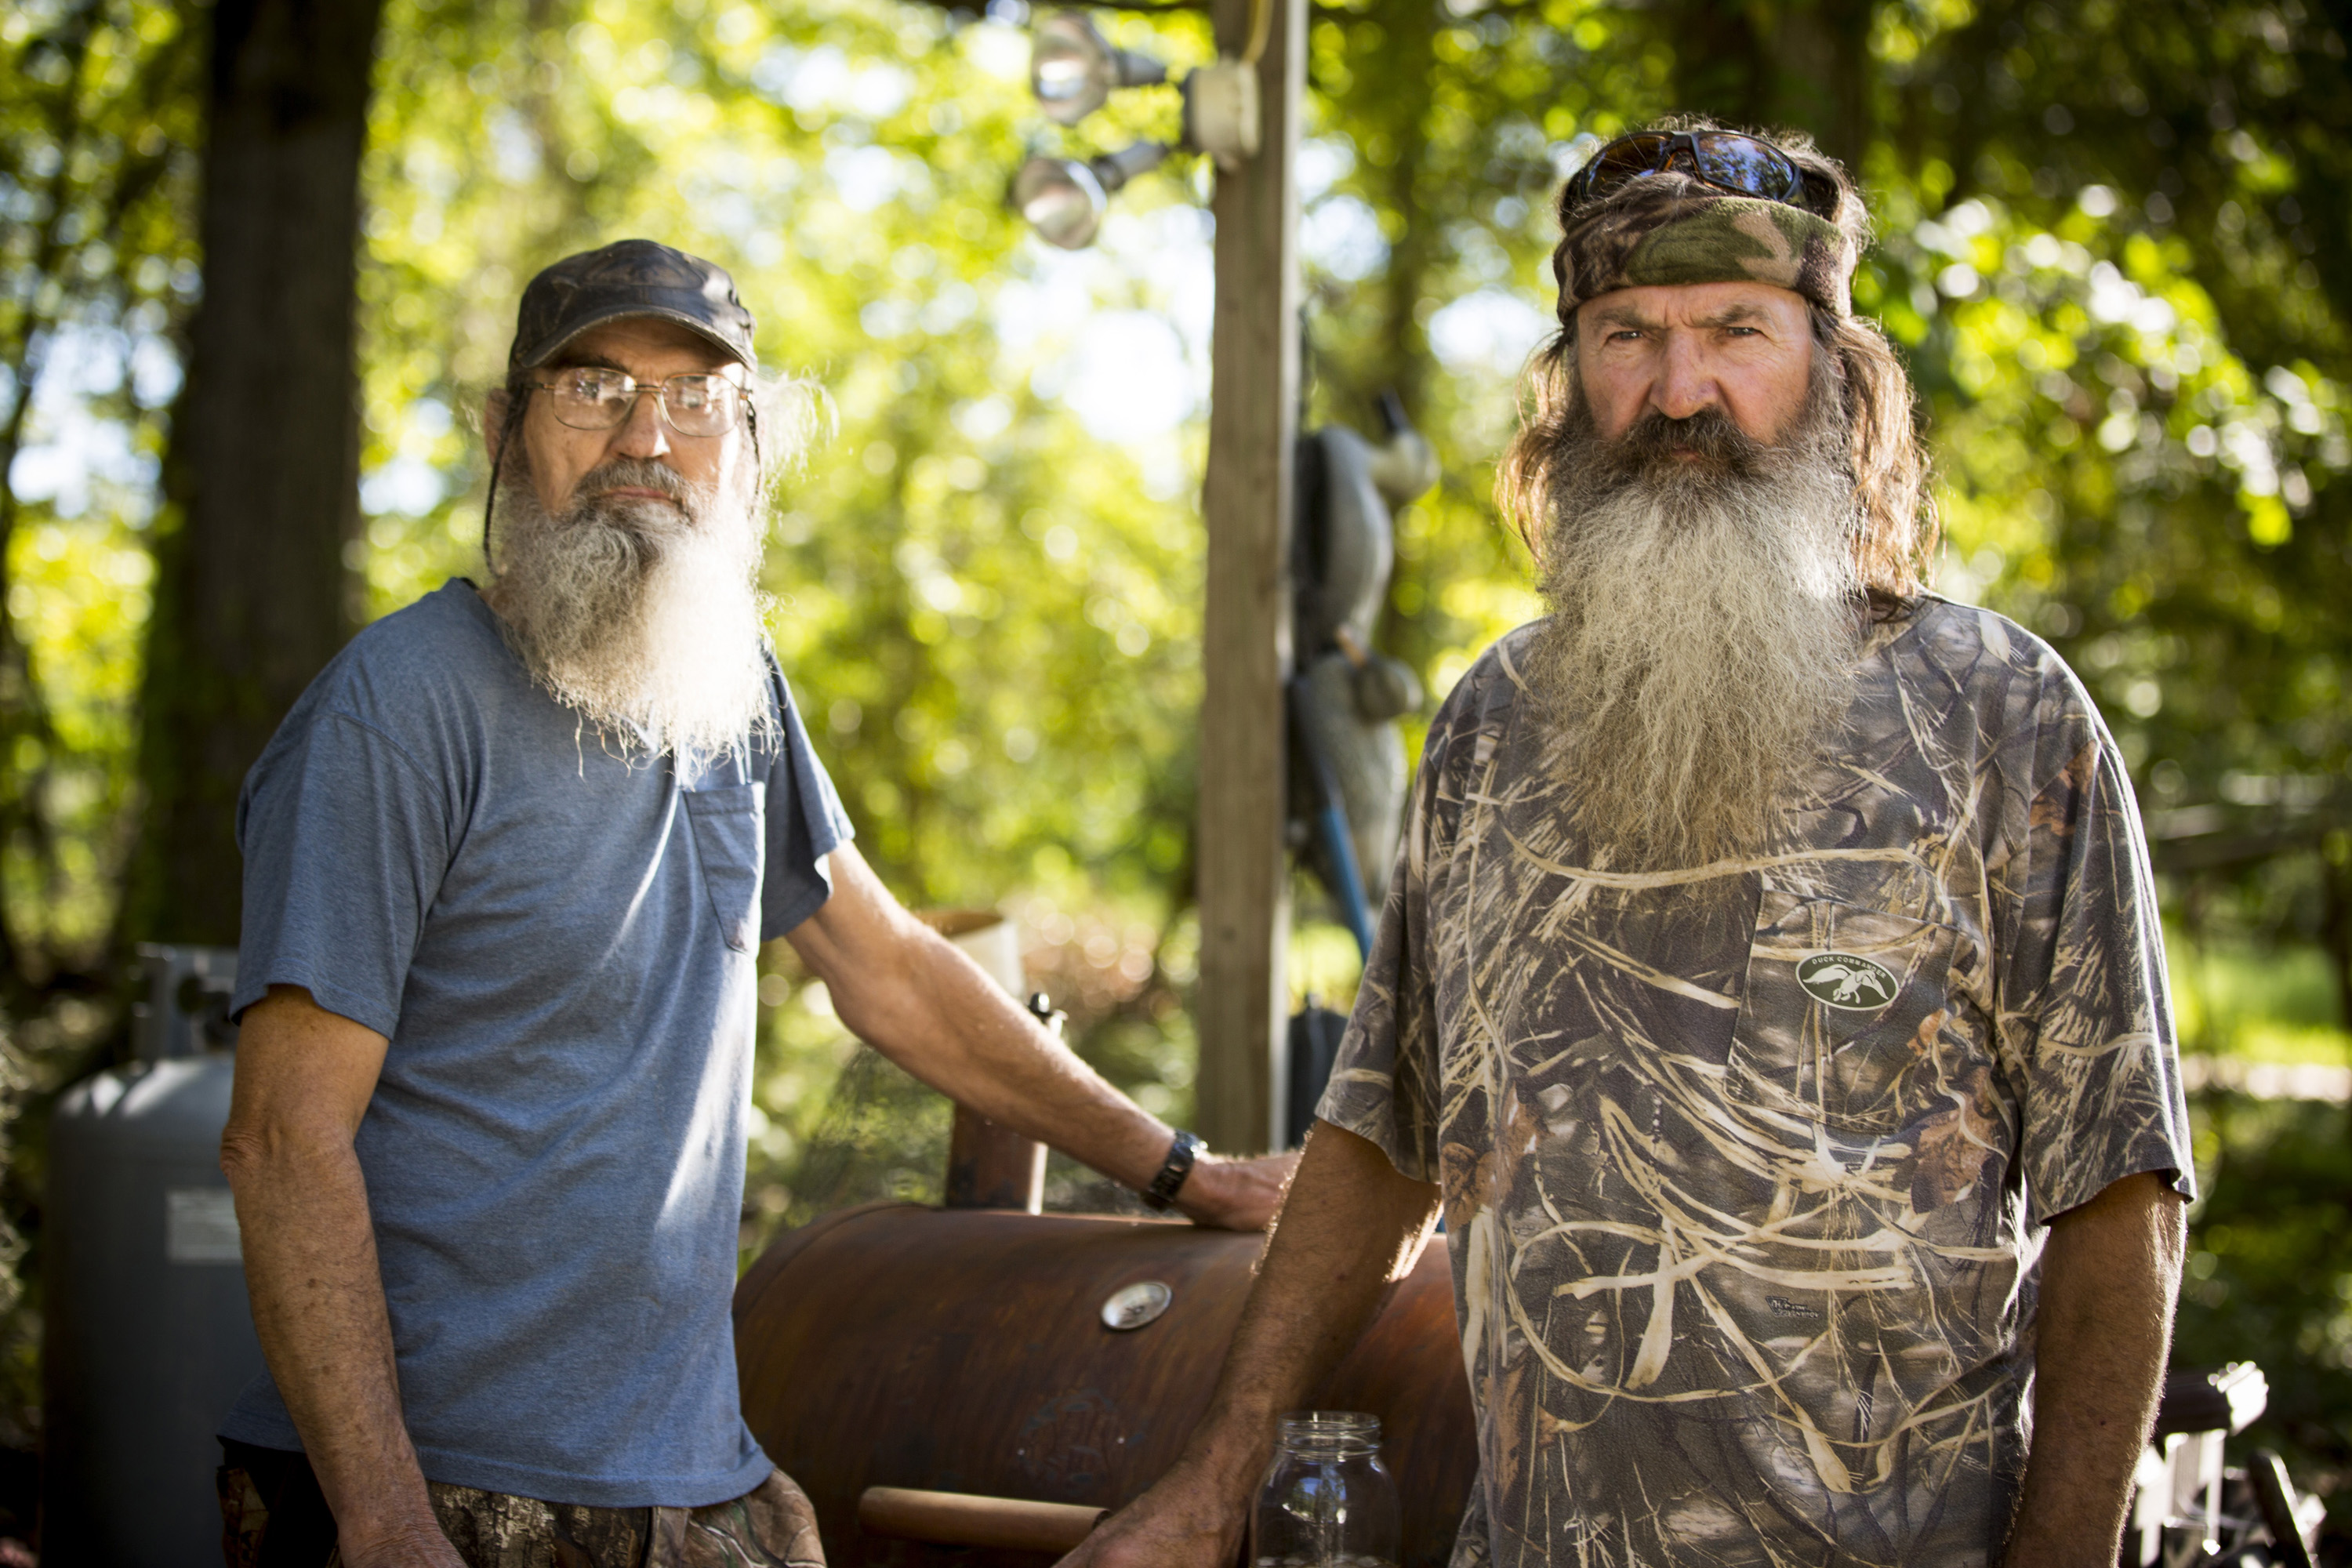 'Duck Dynasty' supporters and critics respond to star's reinstatement, say they will watch A&E's next moves